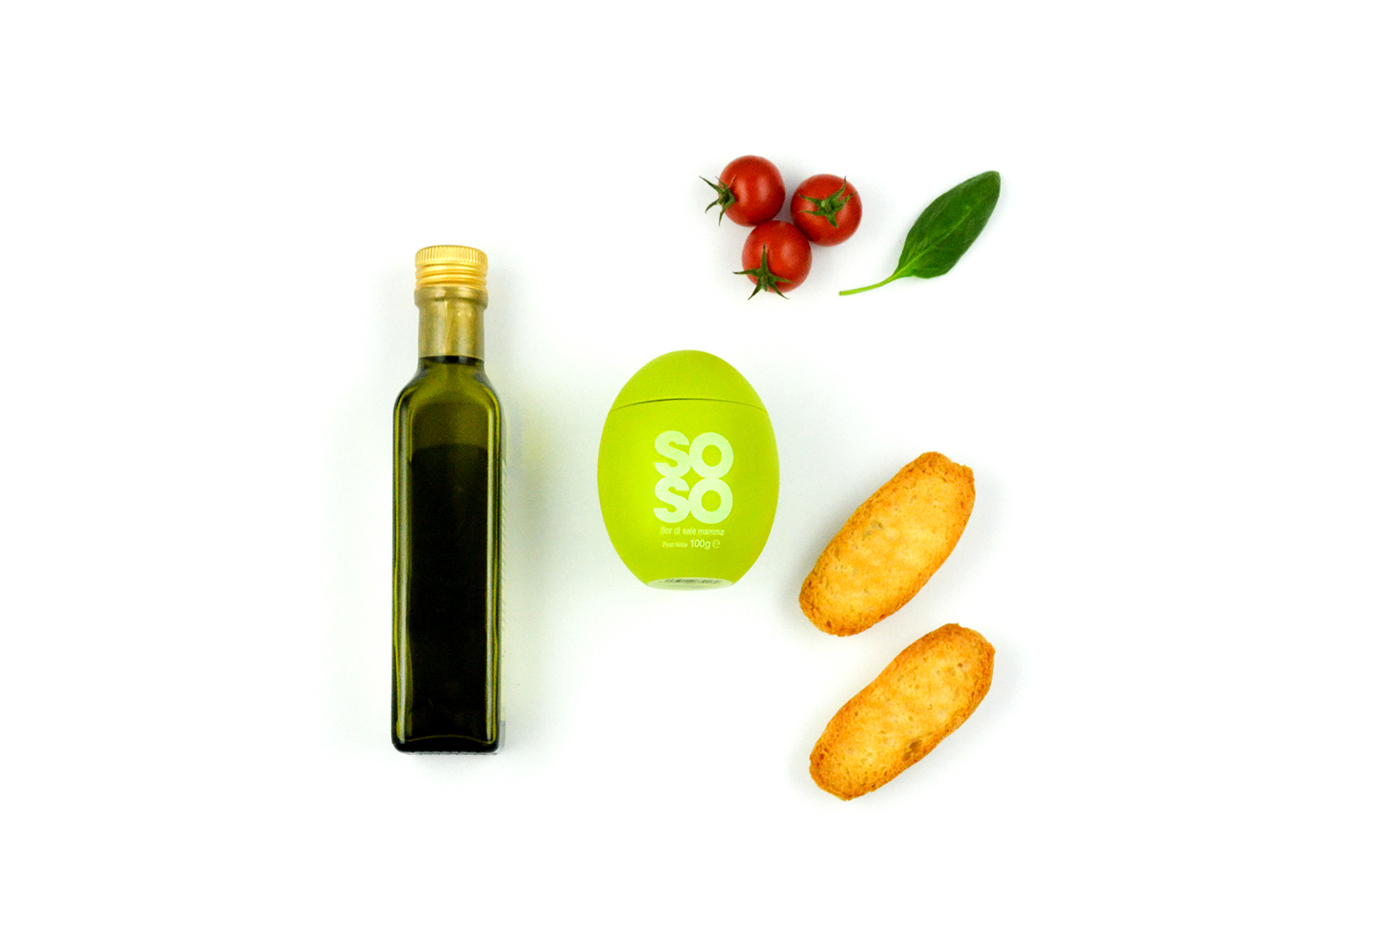 SOSO Product Photography advertisement Photography  flat lay